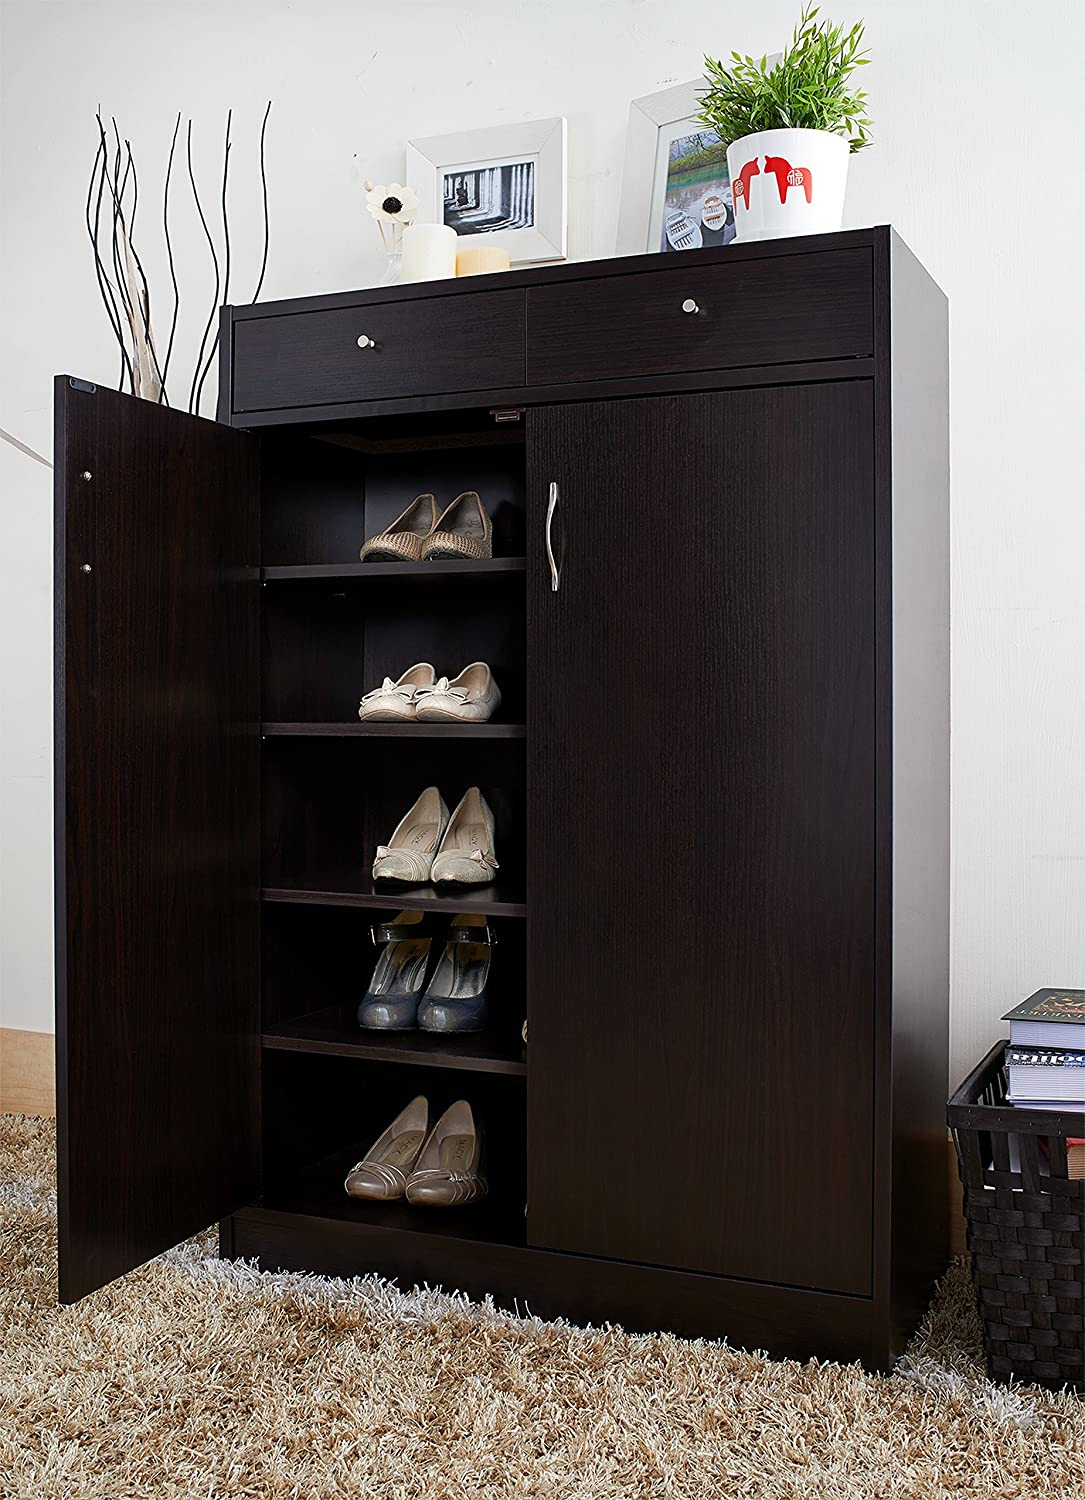 Amazon.com: ioHOMES 5-Shelf Axis Shoes Cabinet with 2-Drawer ...